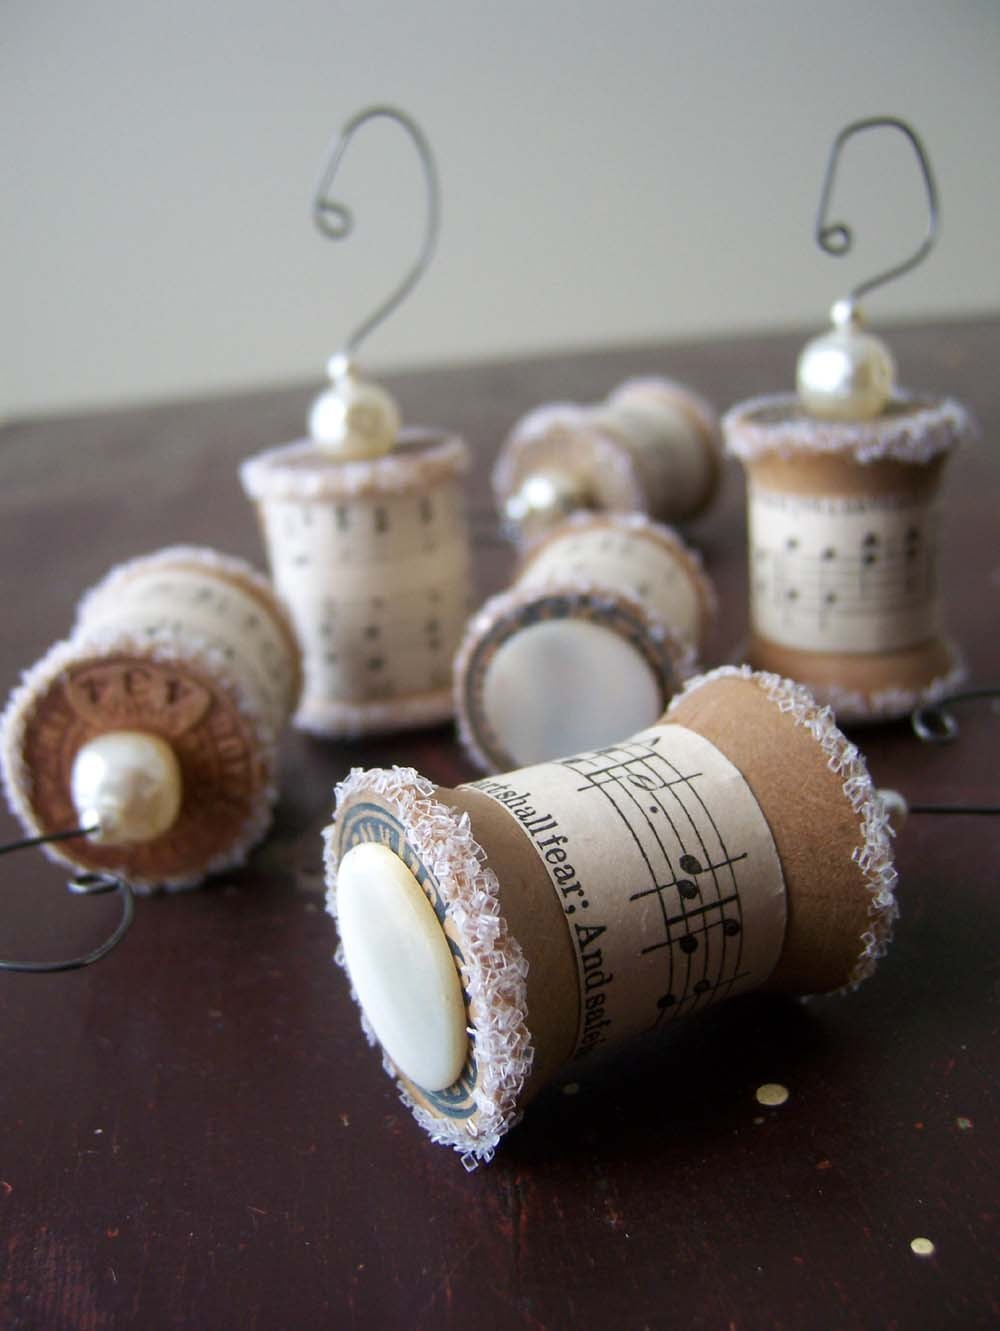 Sheet music christmas ornaments - Skyejuice Daily Dose Of Inspiration Inspirational Thursday Upcycled Christmas Ornaments